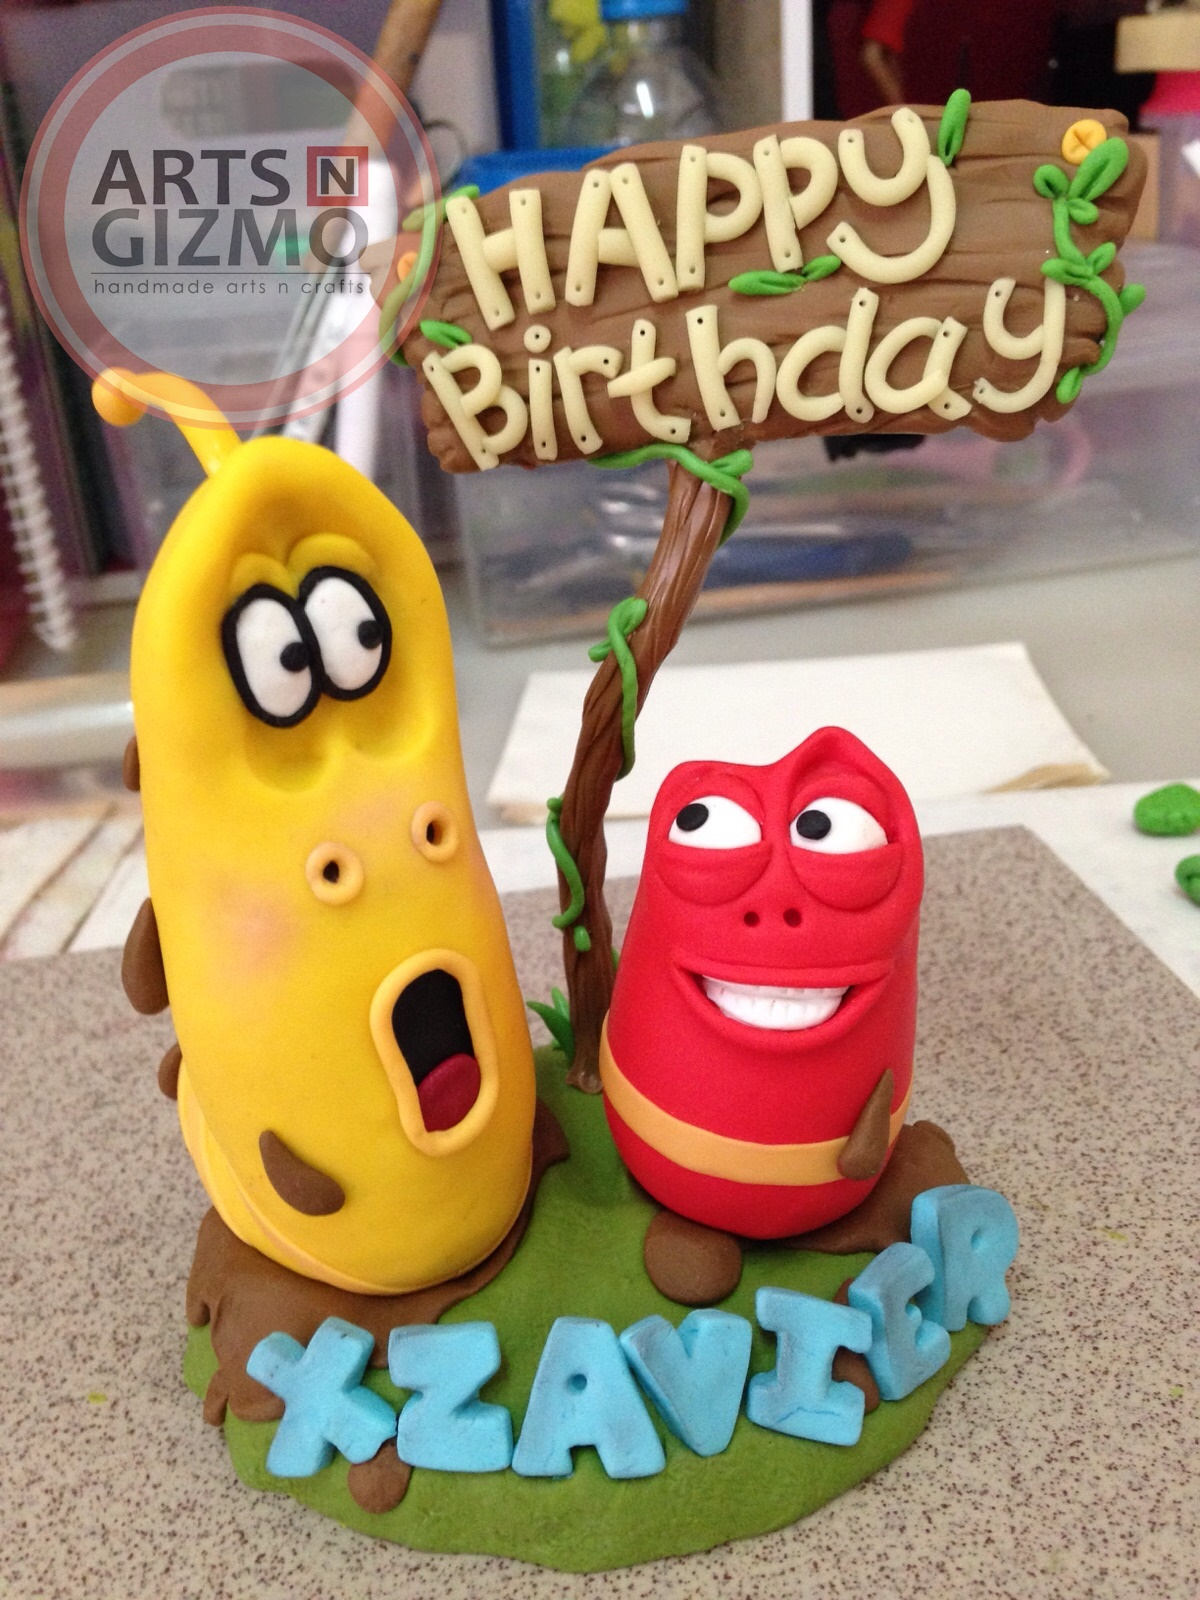 Larva Cartoon Cake Design : Funtastic Arts-n-Gizmo - Handmade arts and crafts: Korean ...